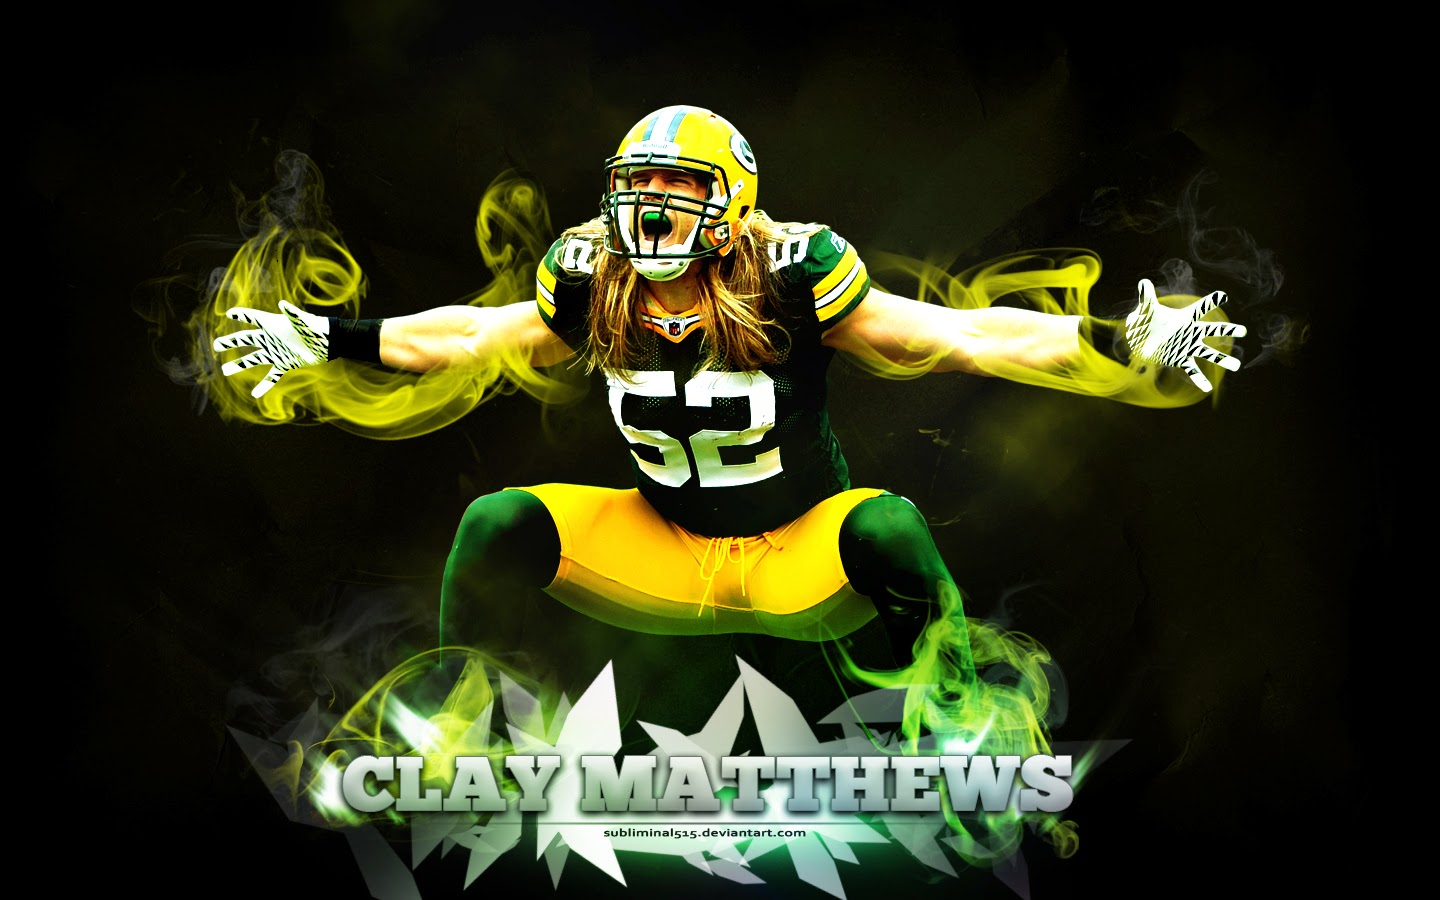 Green Bay Packer Wallpaper: NFL Wallpapers: January 2014